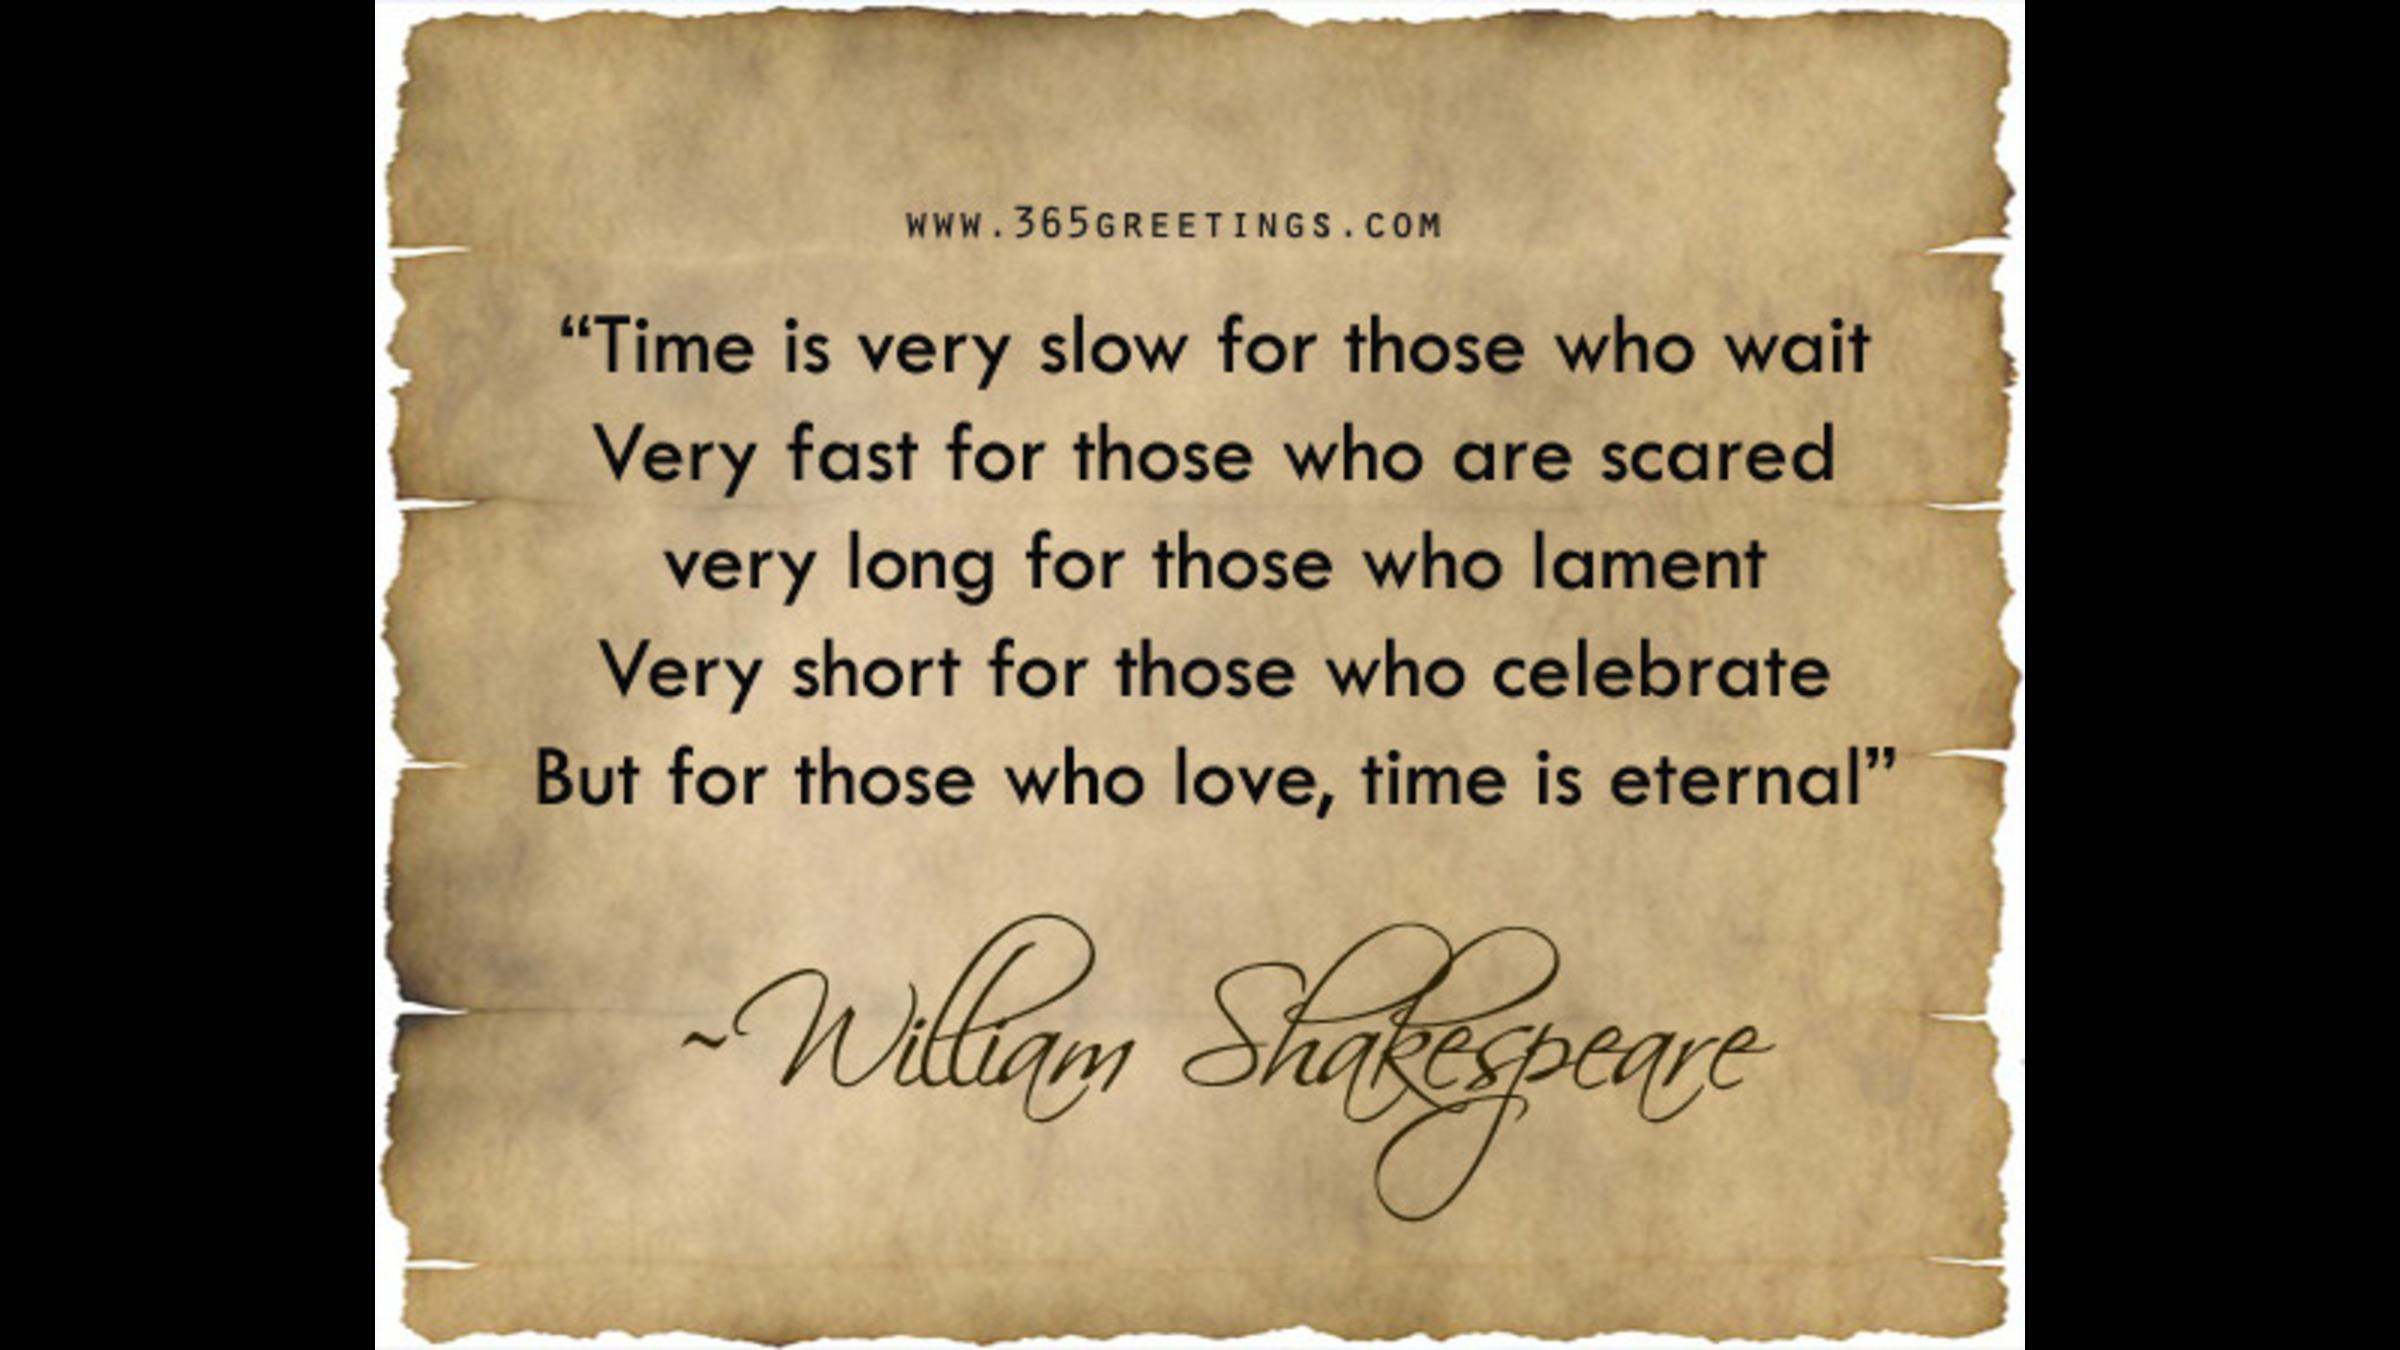 Quotes Shakespeare Shakespearequotes  Cool Digital Photography